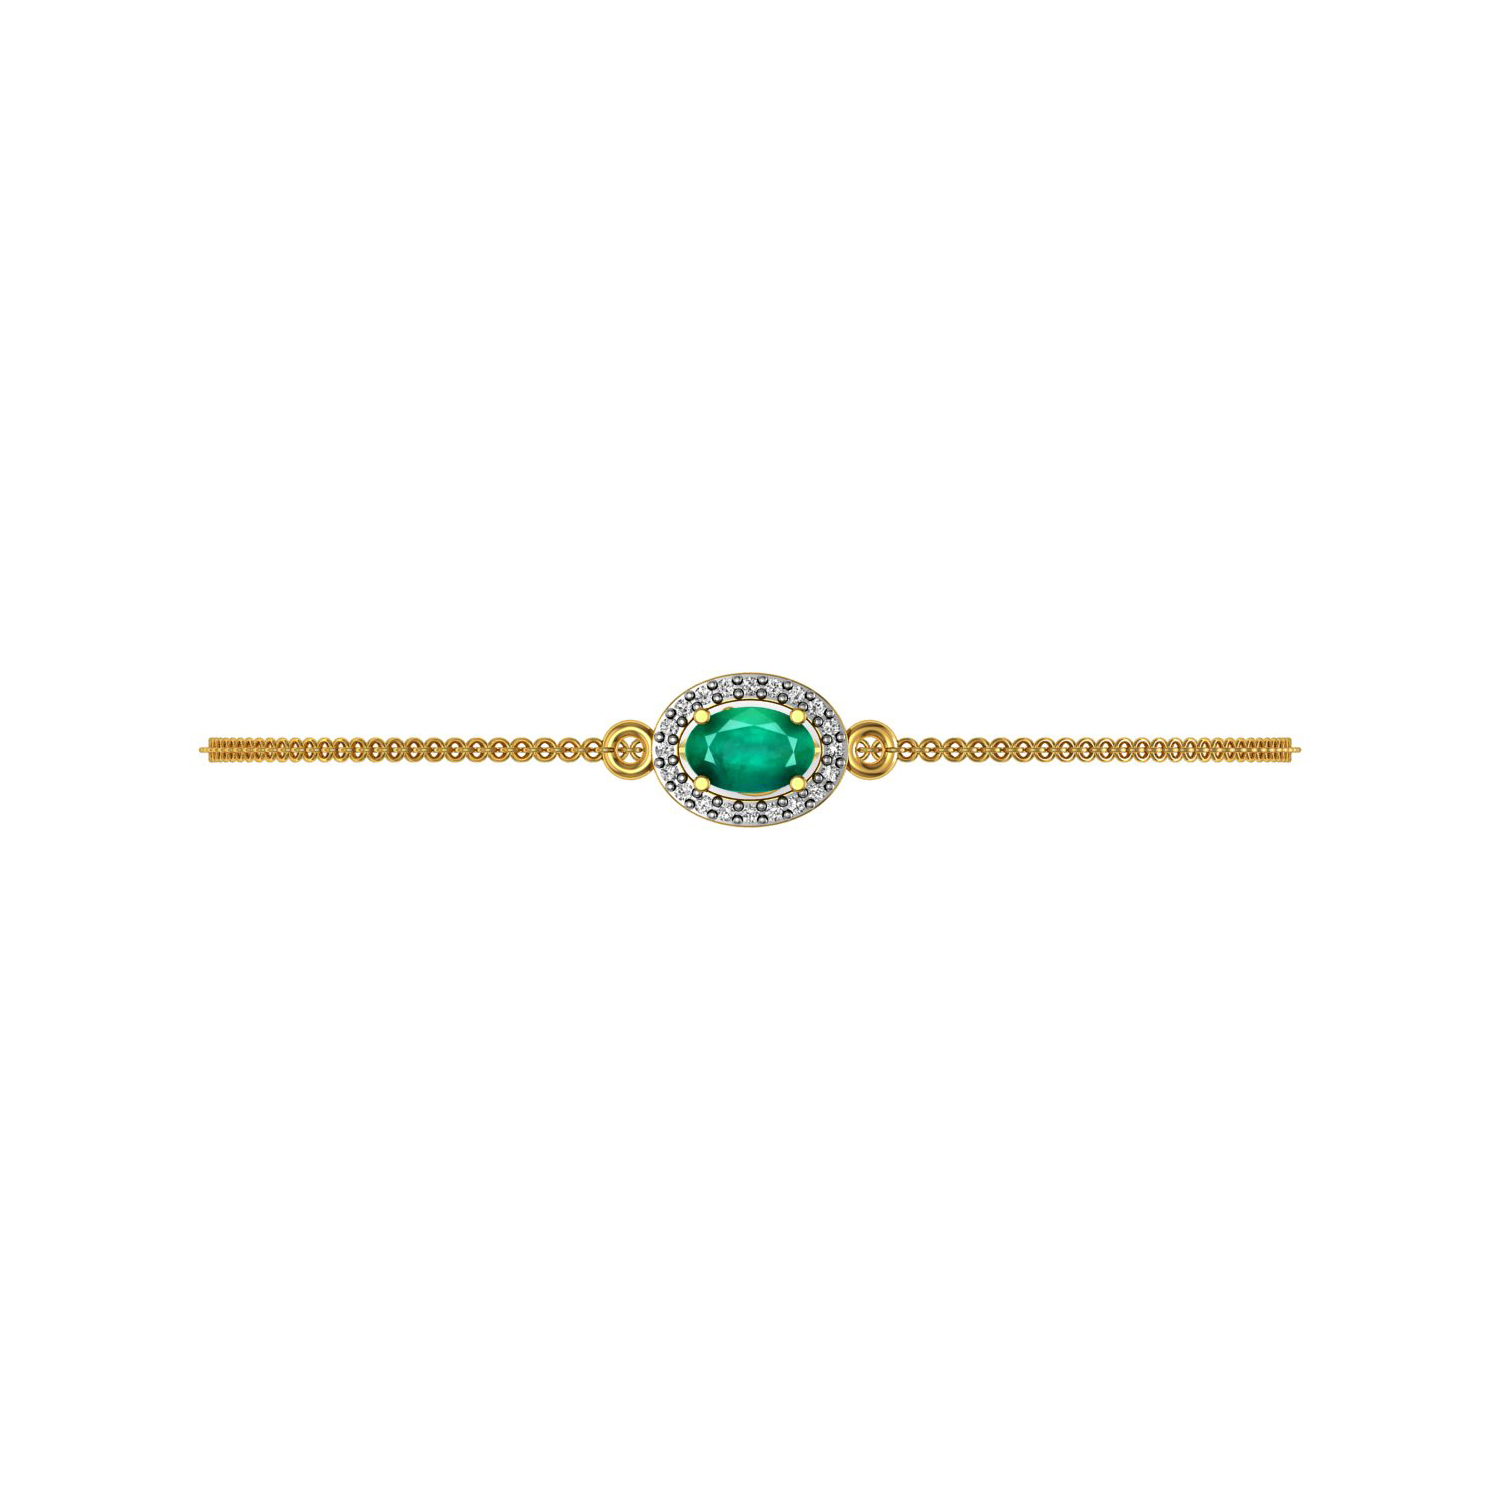 Solid gold emerald real diamond chain bracelet